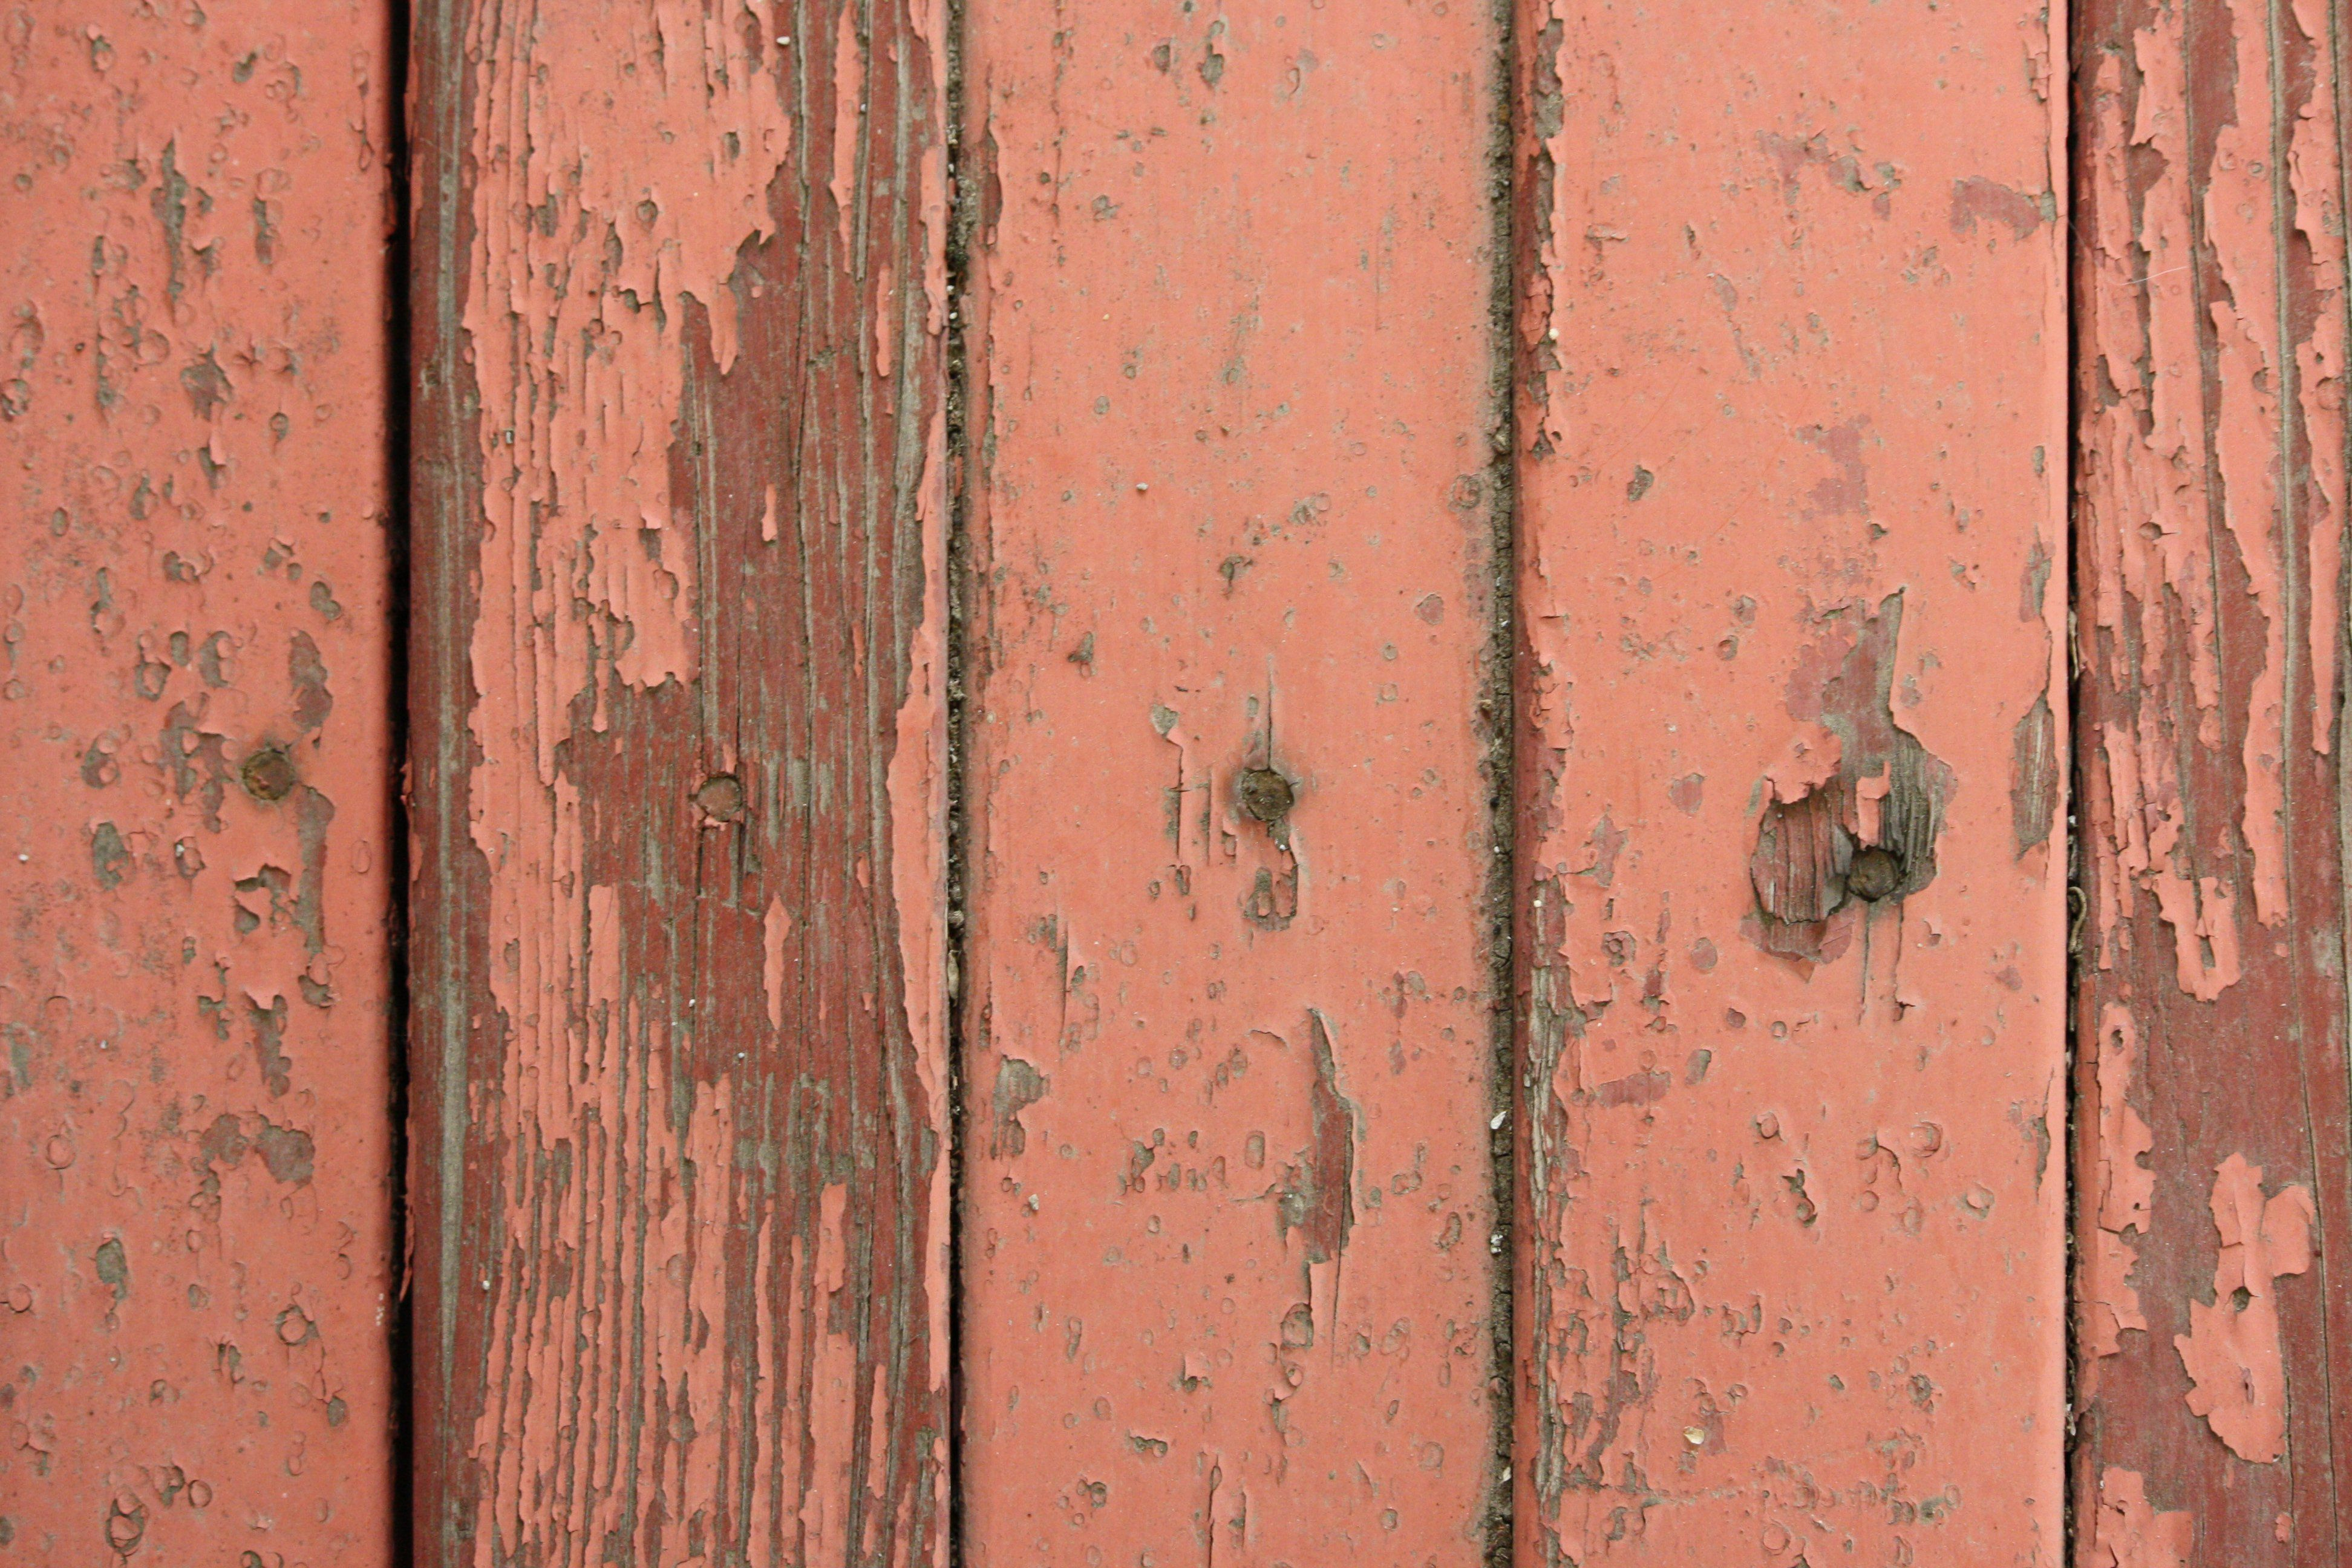 Peeling Red Paint On Old Wooden Boards Texture Free High Resolution Photo Painting Wood Furniture Red Paint Wooden Board